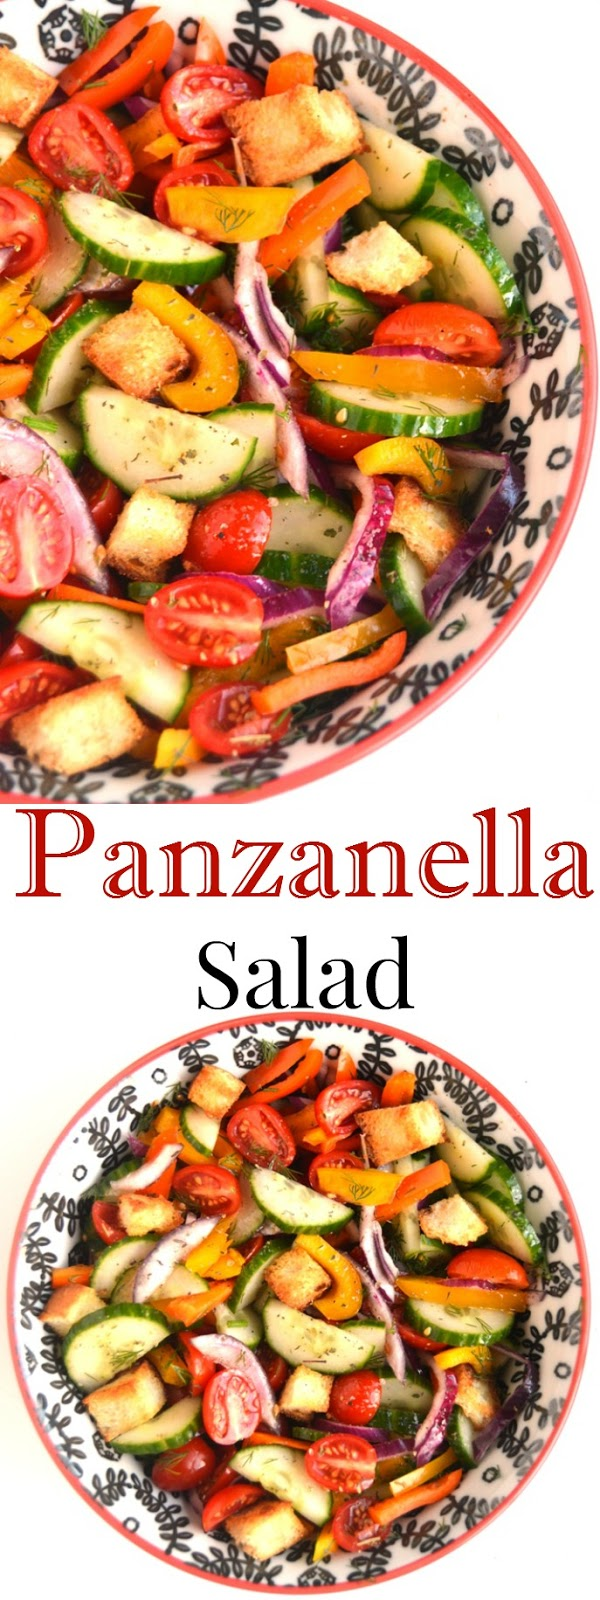 Panzanella Salad is full of flavor with fresh tomatoes, cucumbers, bell peppers, red onion, dill, garlic French bread croutons and a homemade Italian dressing! www.nutritionistreviews.com